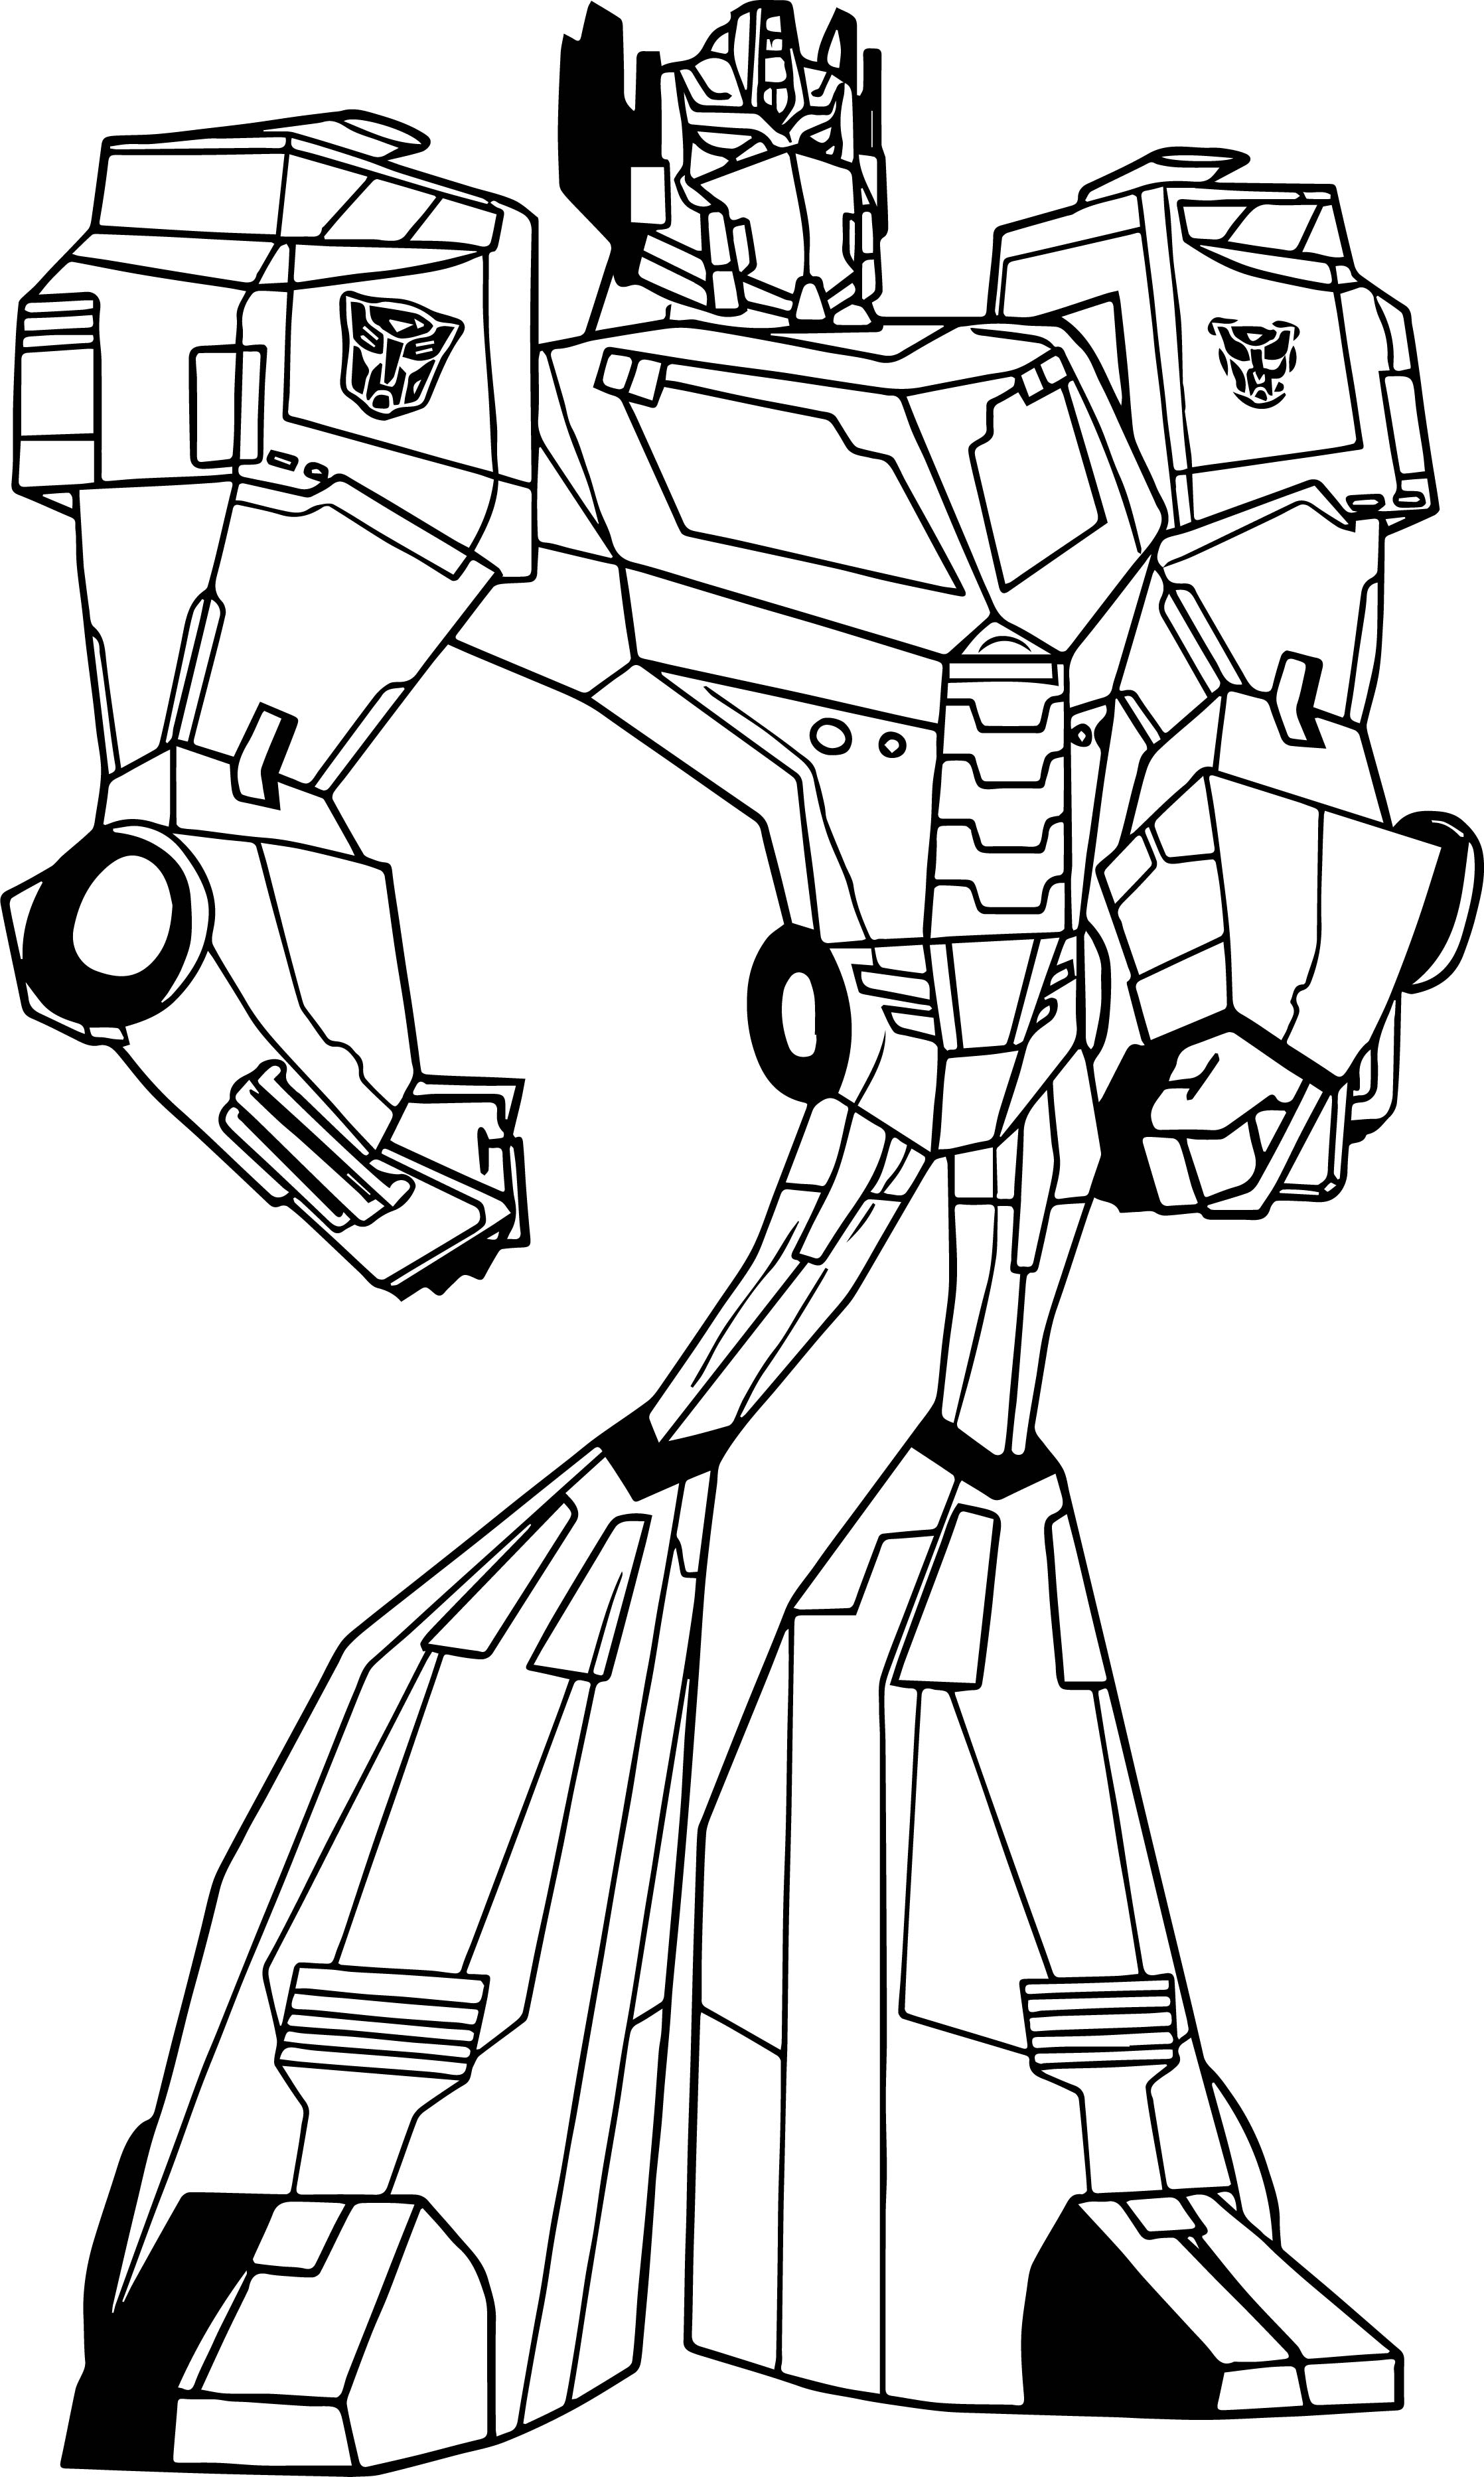 Transformers animated optimus prime coloring page for Transformers animated coloring pages